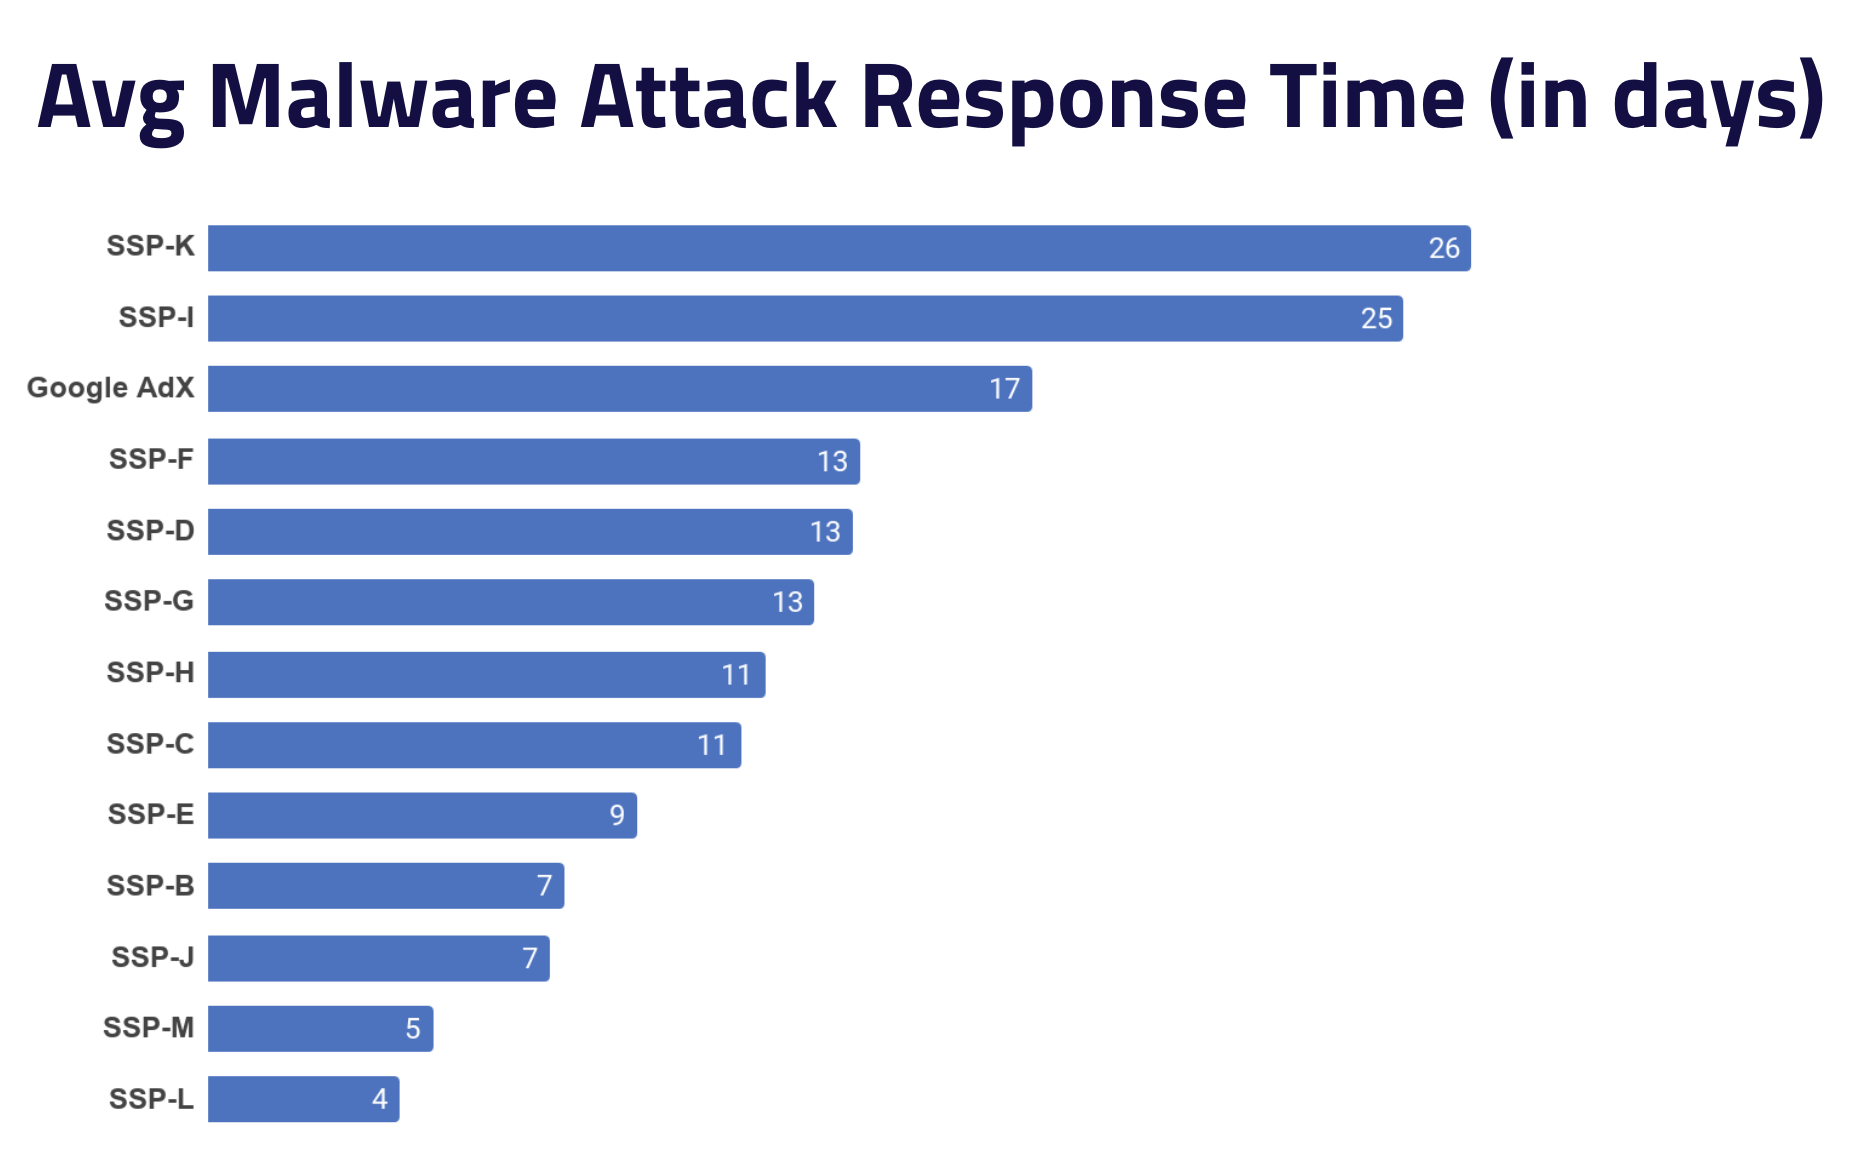 Average Malware Attack Response Time in 2019